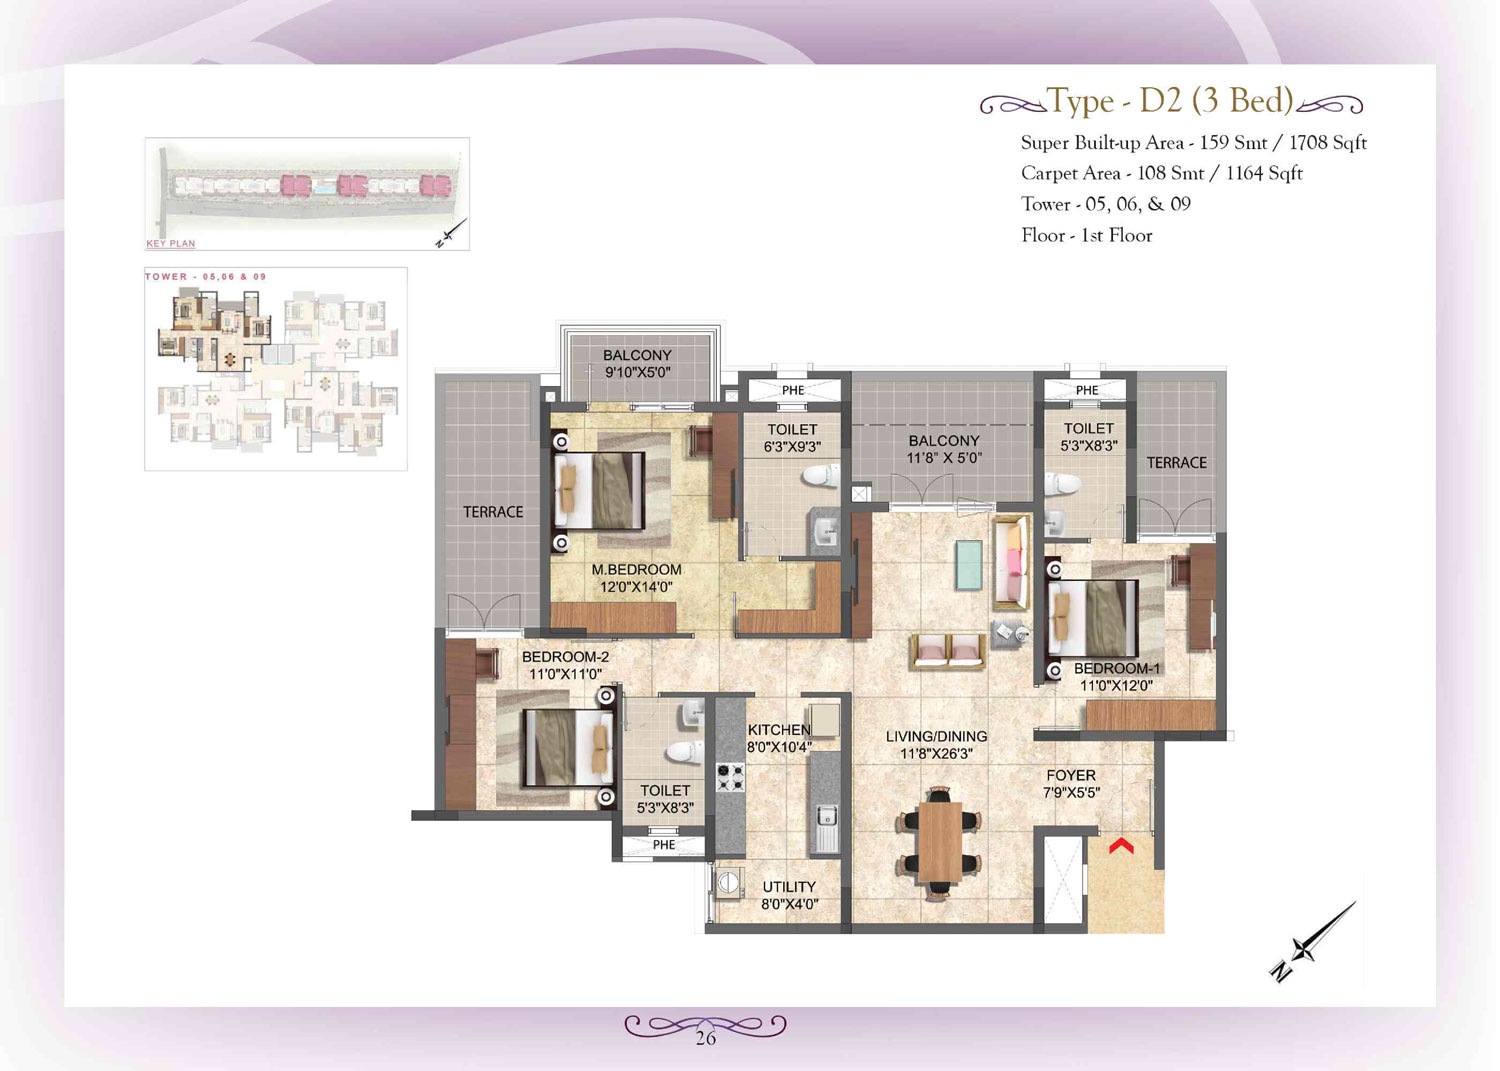 Type D2 - 3 Bed - 1708 Sq Ft